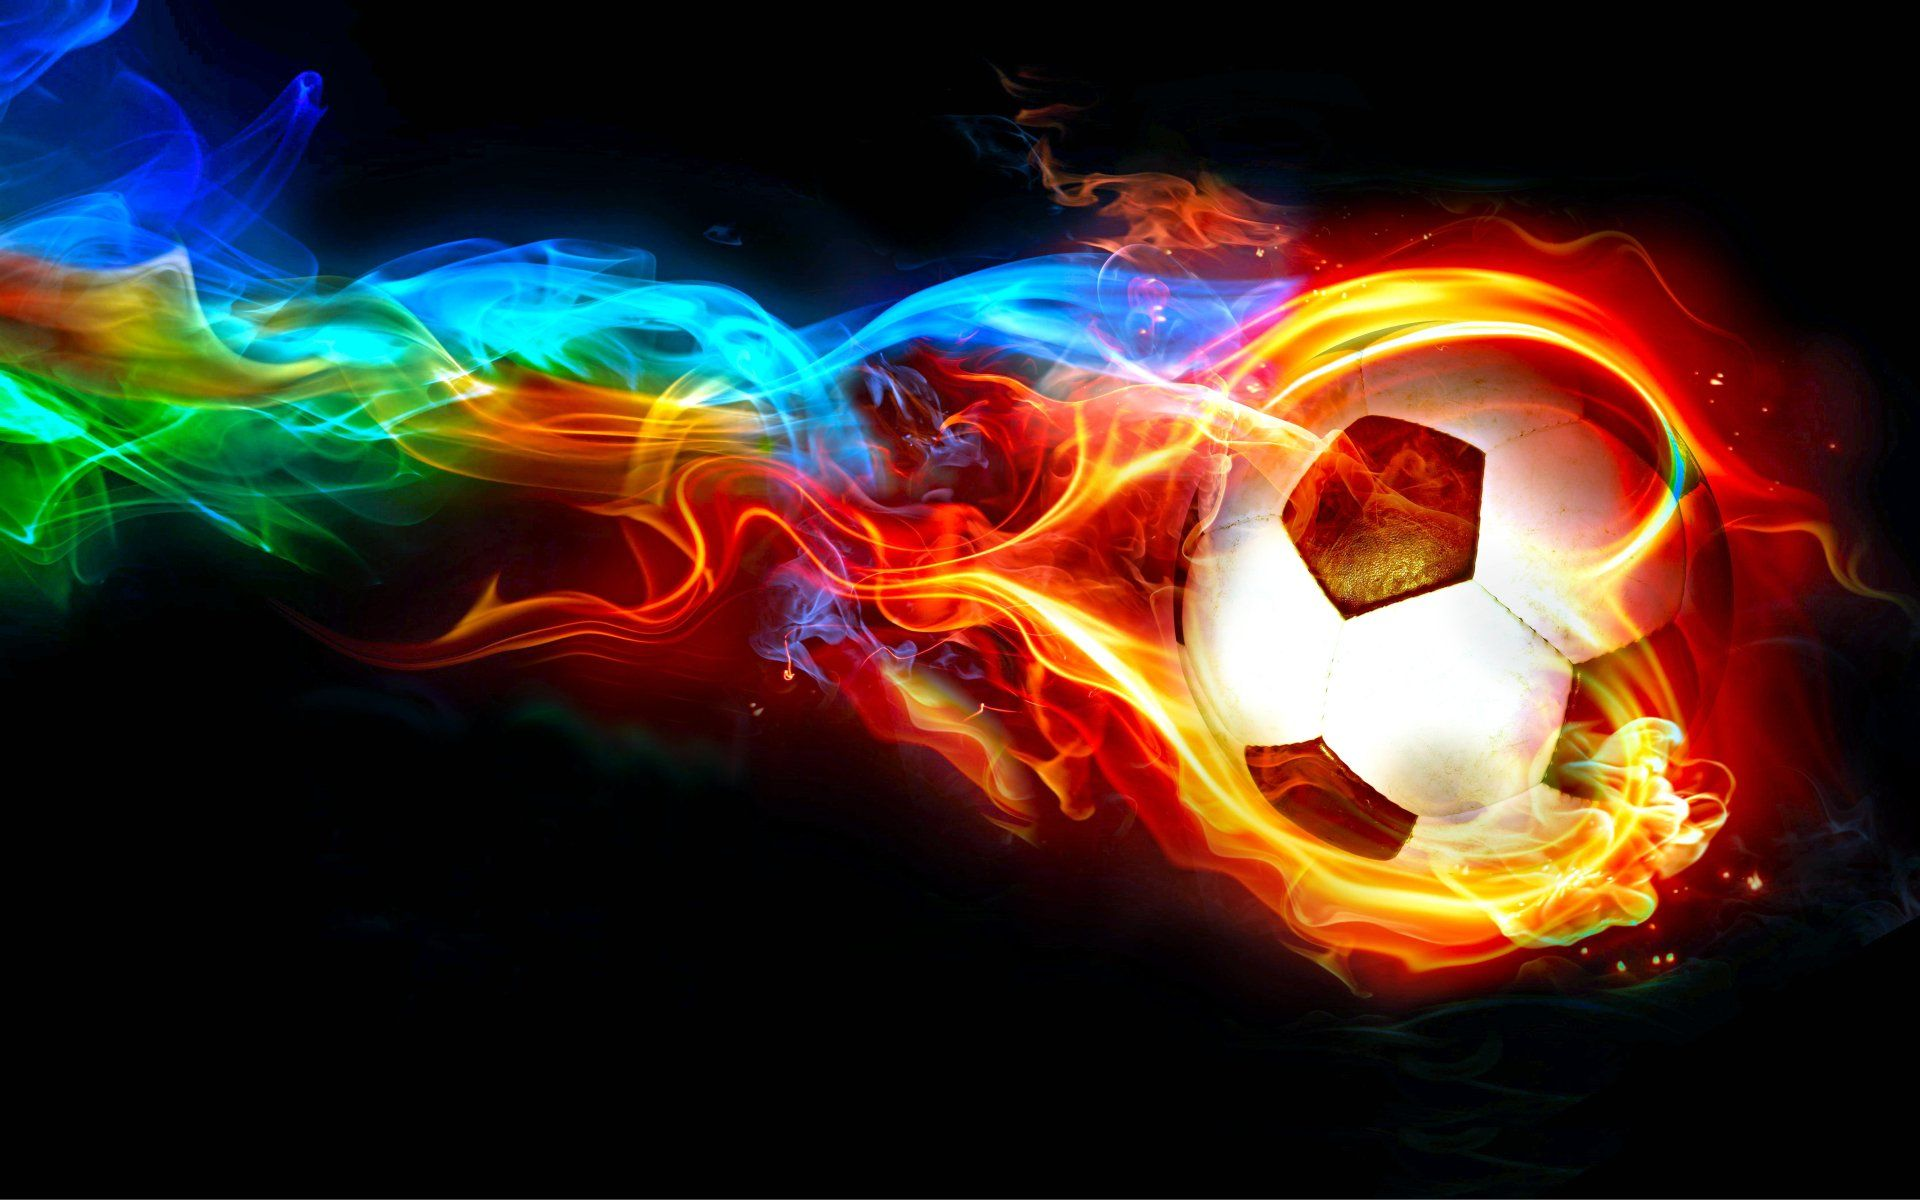 A Corporate Identity Is The Manner Which A Corporation Firm Or Business Presents Themselves To The Public If You Futbolnye Kartinki Futbol Iskusstvo Futbol